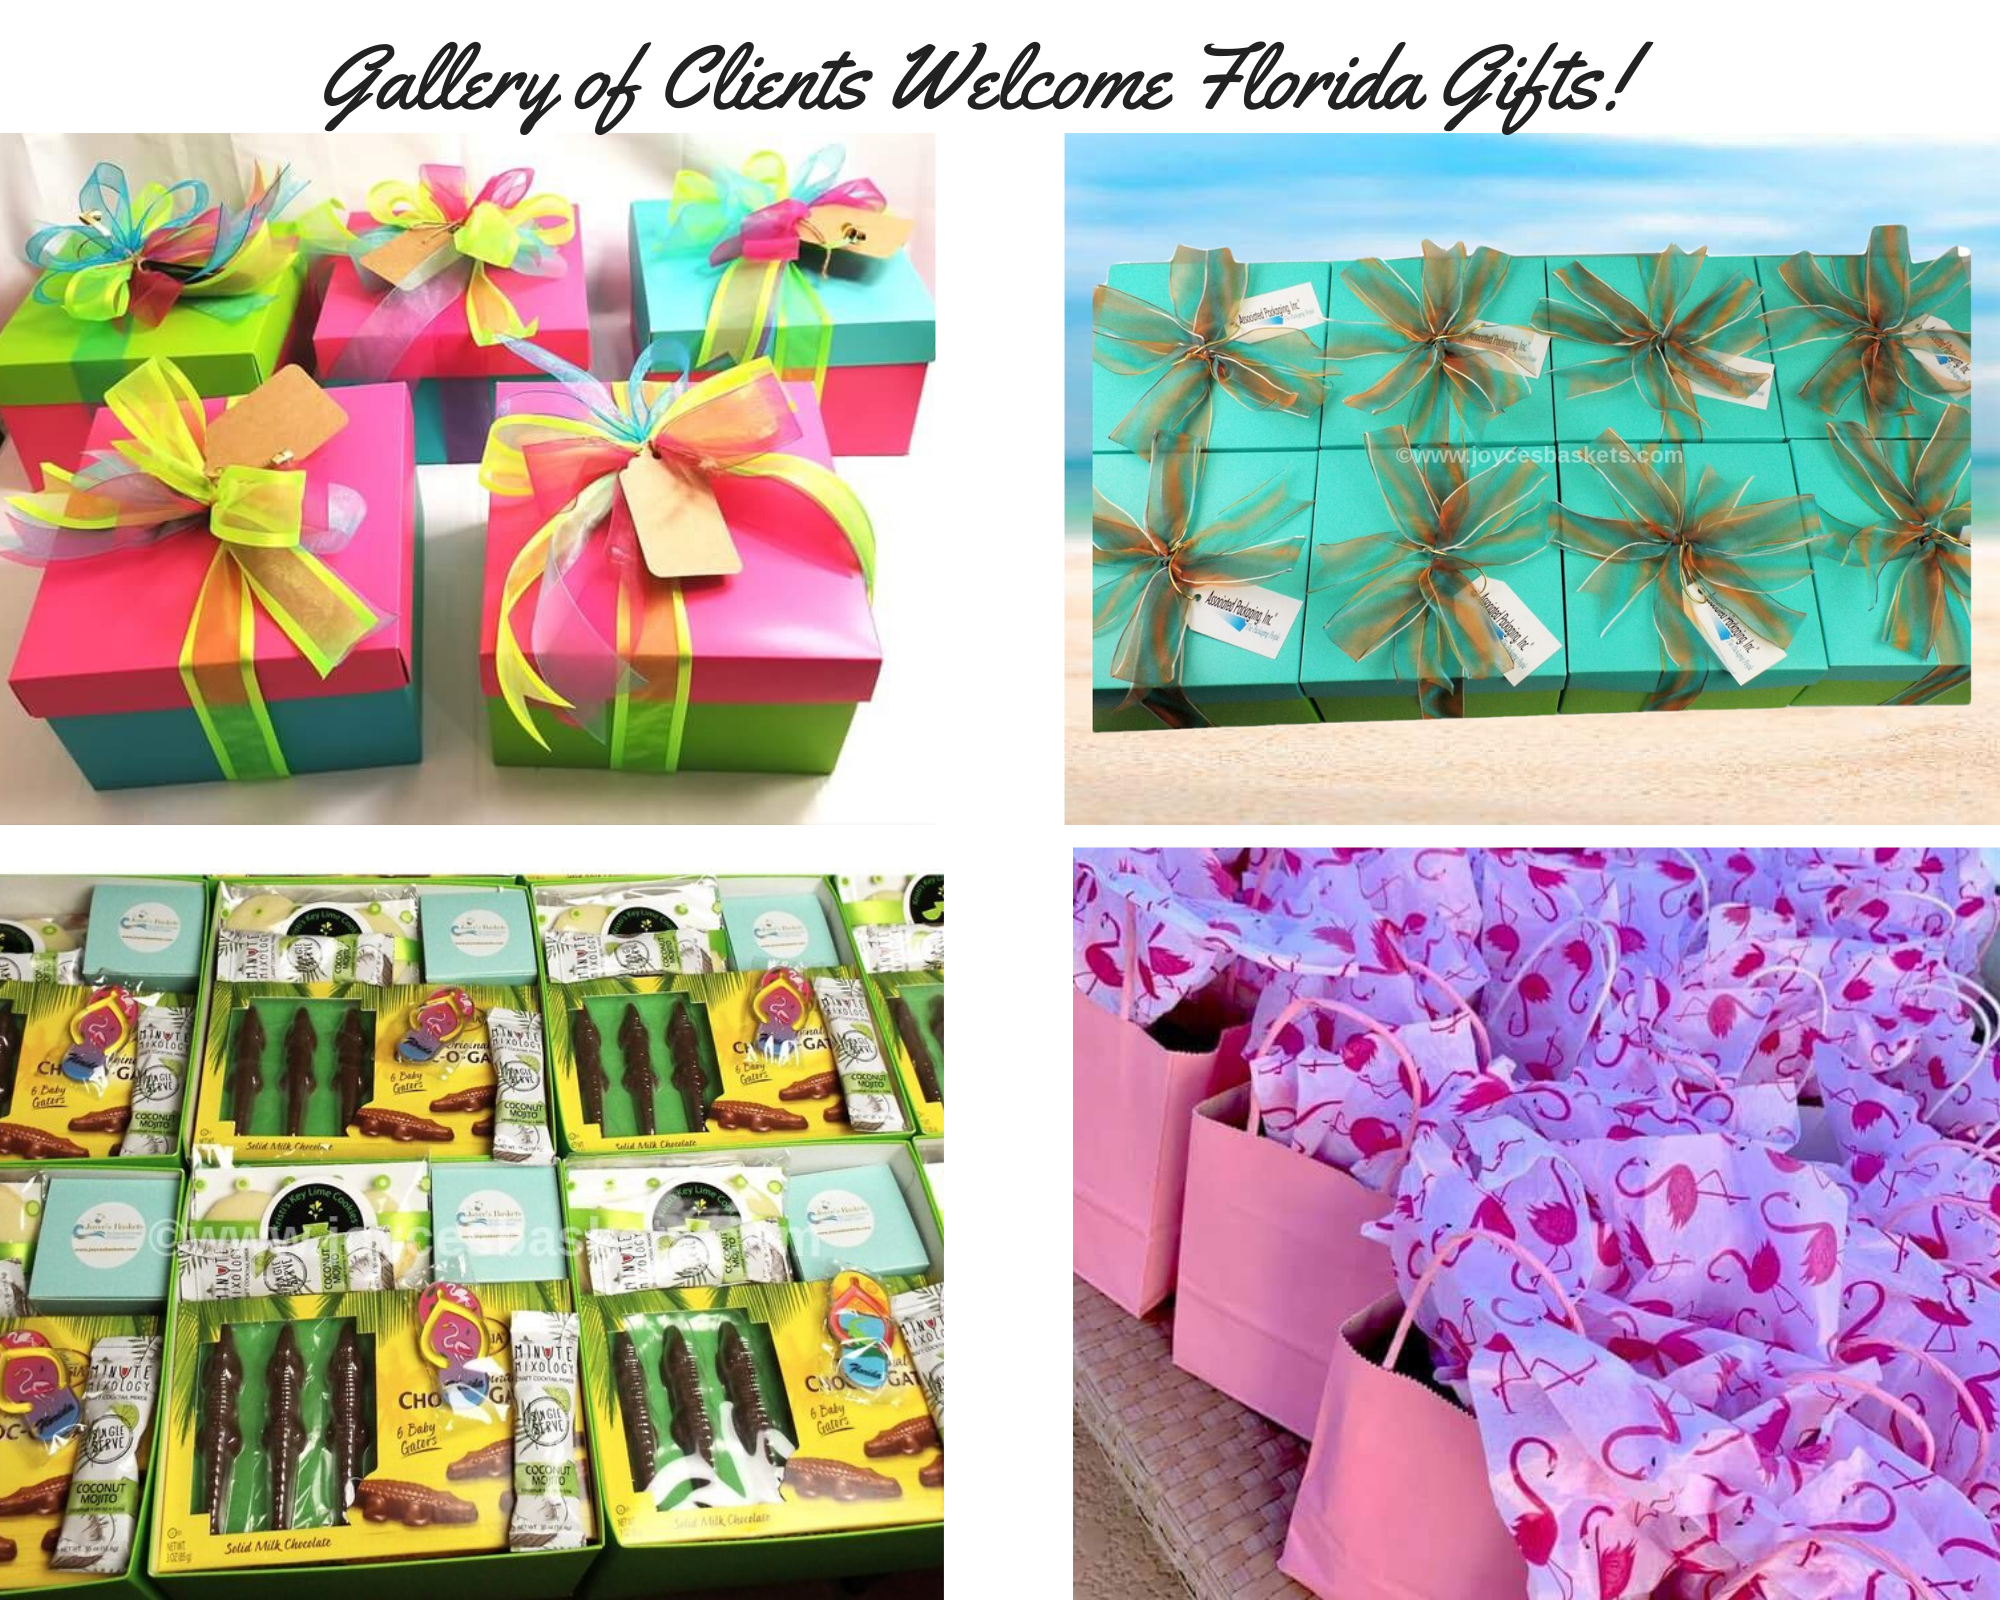 gallery-of-clients-welcome-florida-gifts-.png